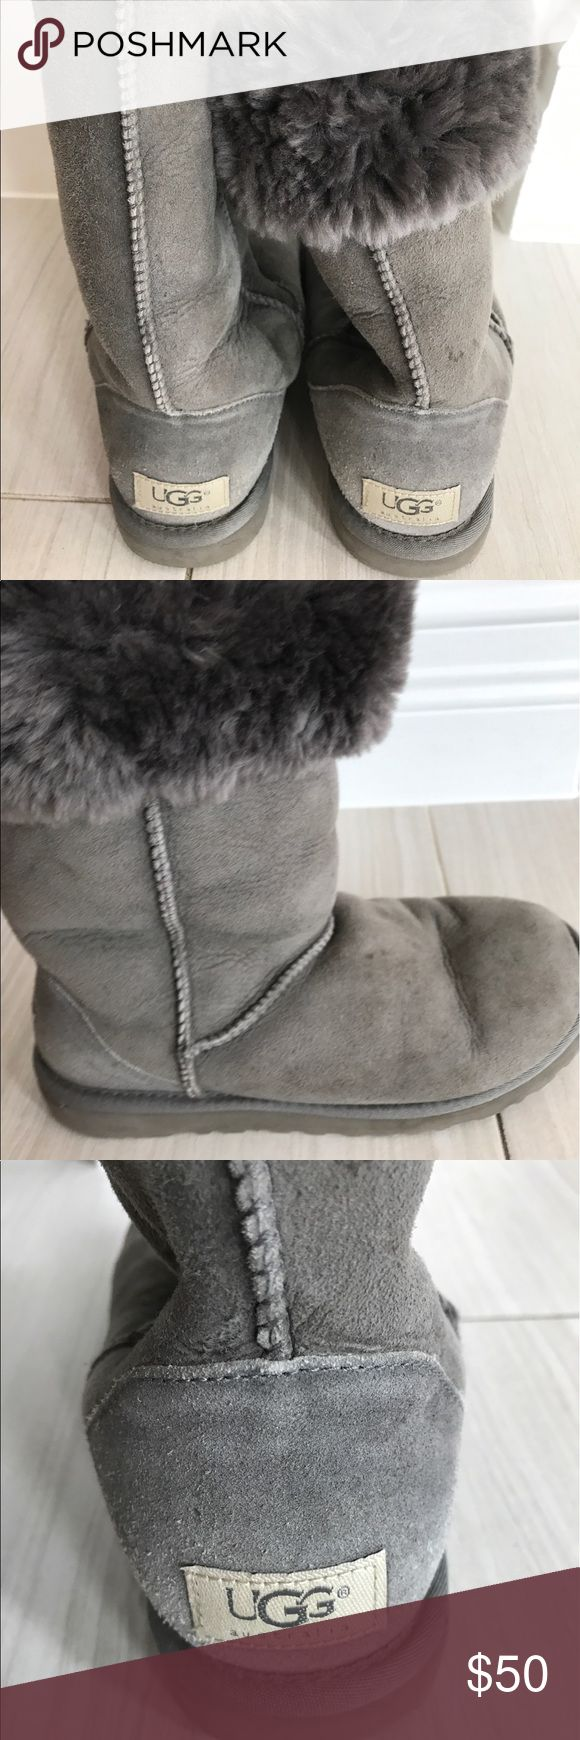 """UGG Classic tall boots Authentic UGG Boots. Good condition. The Classic Tall is an icon of casual style. Now pretreated for protection from water and staining, this luxurious sheepskin boot has also been updated with the Treadlite by UGG™ sole, which provides increased cushioning, durability, and traction. here  Twinface and suede Pretreated to repel water and stains Sheepskin insole Treadlite by UGG™ outsole Nylon binding 11.75"""" shaft height UGG Shoes Winter & Rain Boots"""